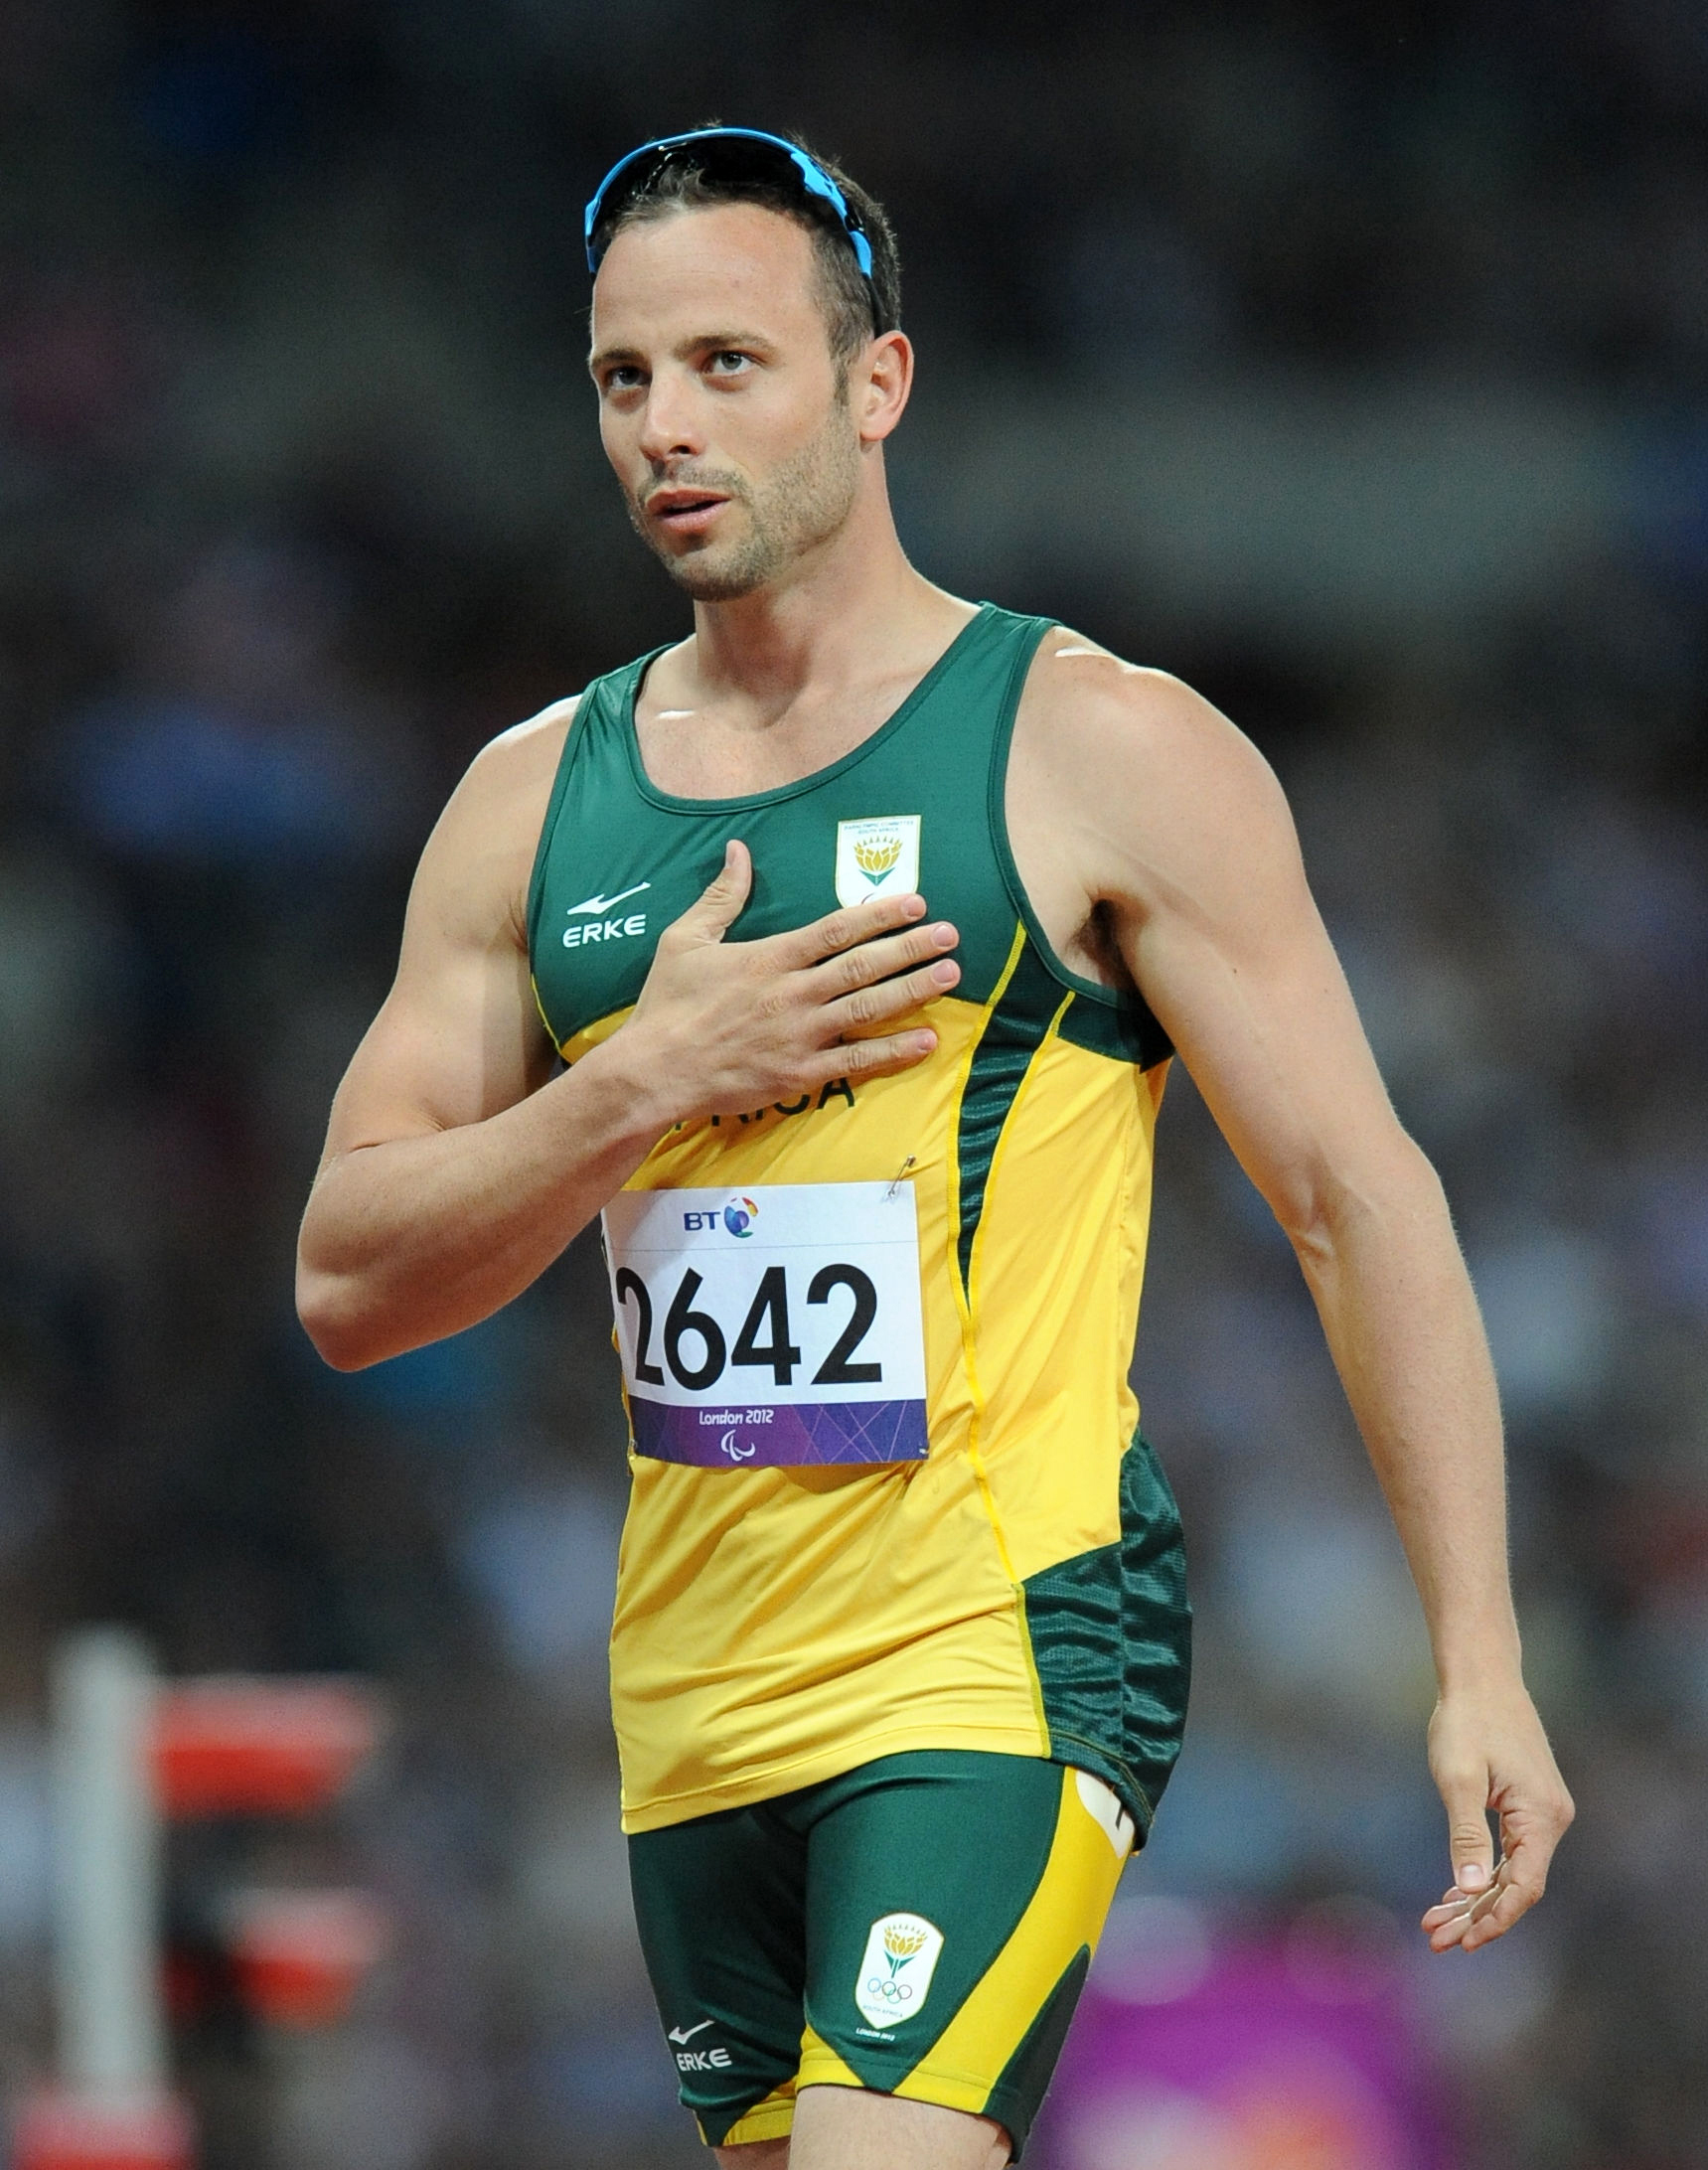 Oscar Pistorius 'not ready' to compete again this year